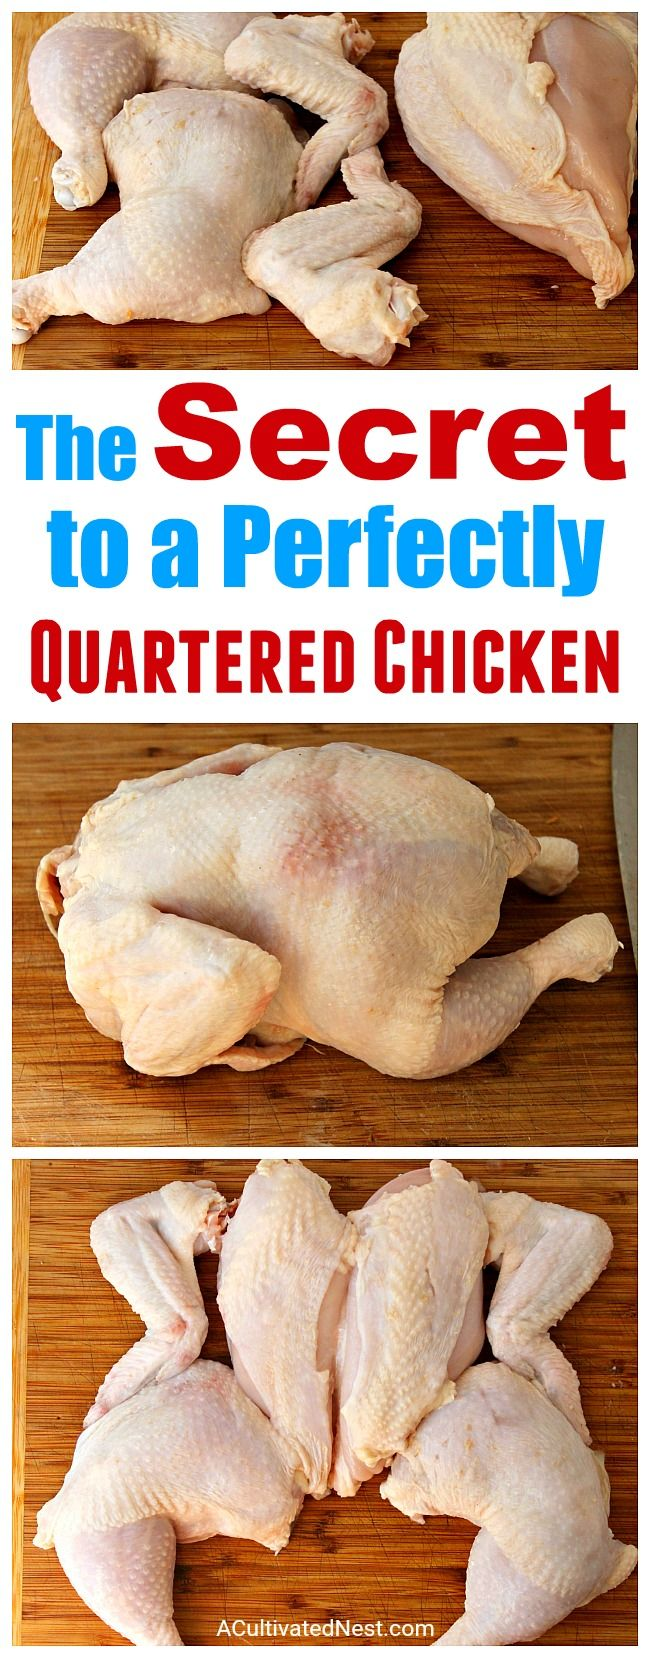 rter a whole chicken at home. And it only takes 5 minutes! Check out my easy tutorial! #frugalLiving #chicken #meat #saveMoney